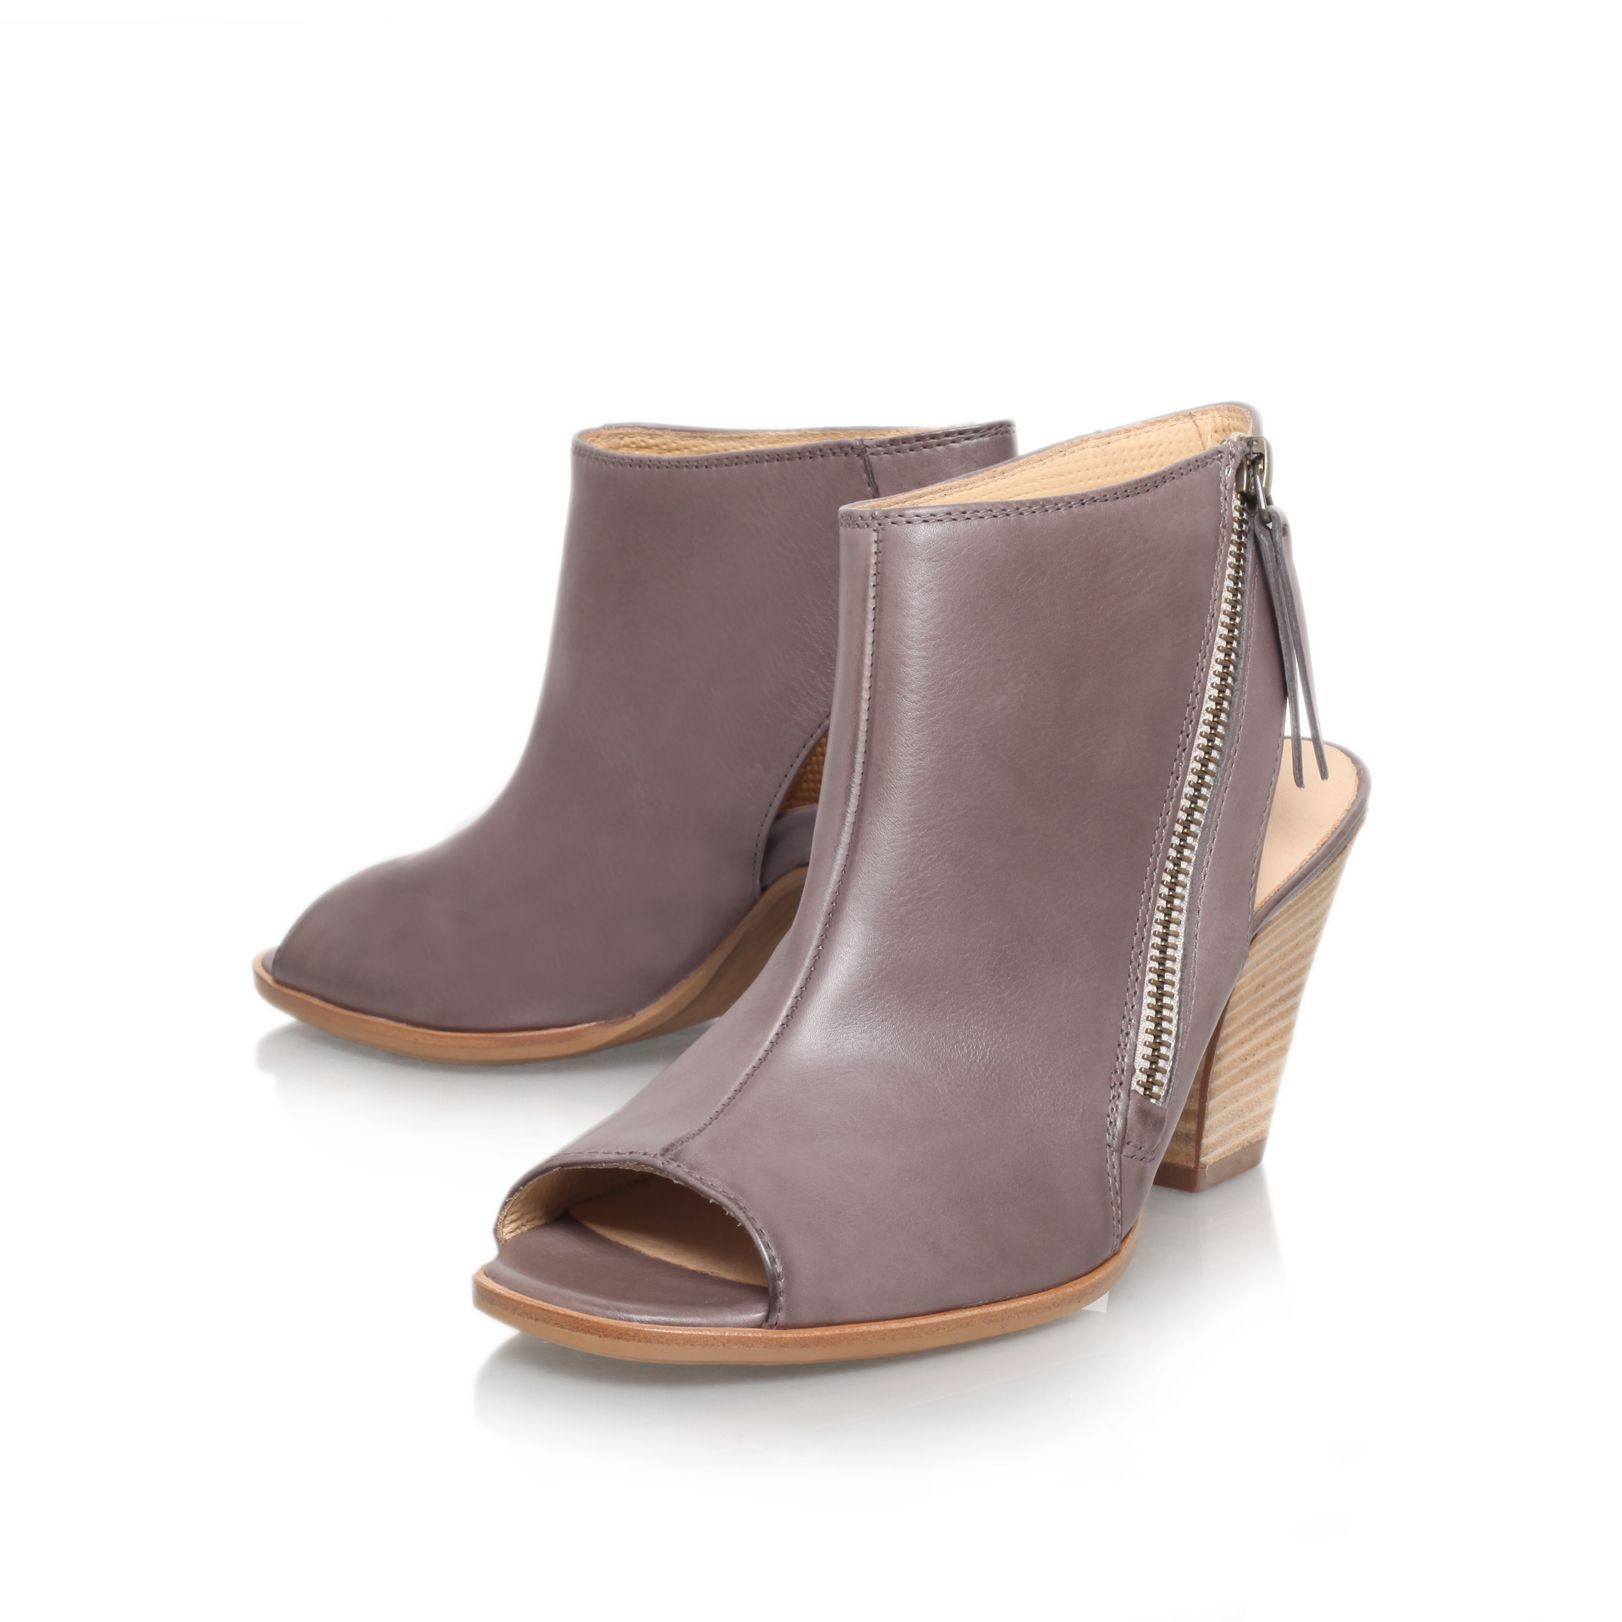 paul green annabel mid heel peep toe shoe boots in gray taupe lyst. Black Bedroom Furniture Sets. Home Design Ideas